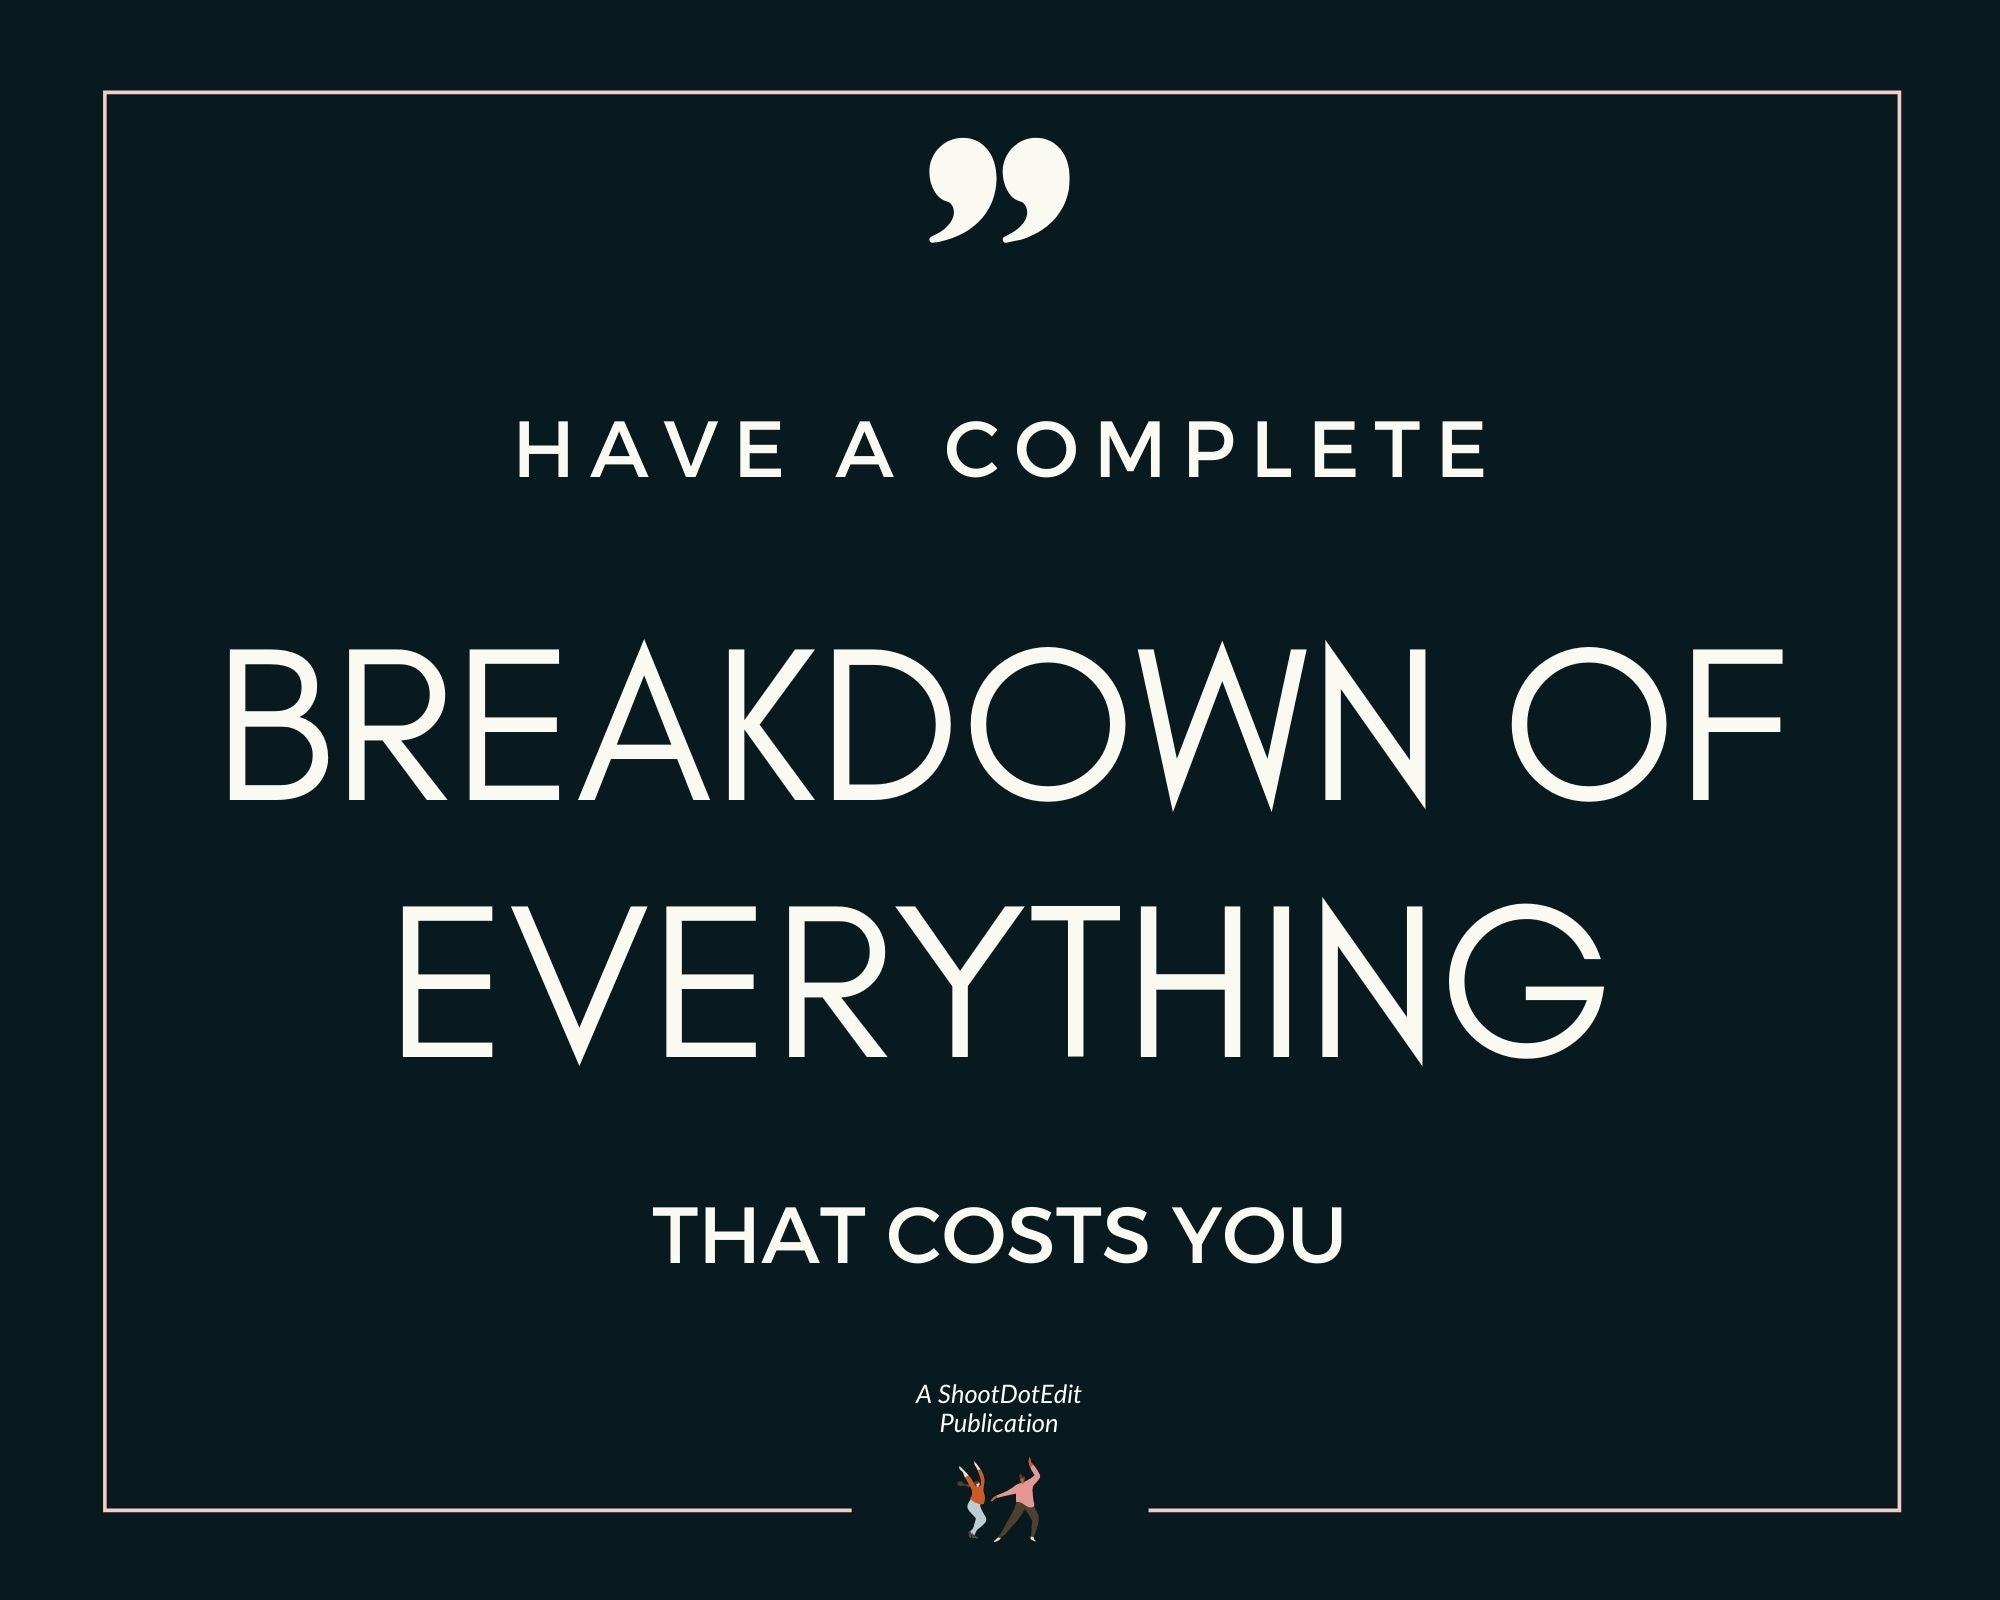 Infographic stating have a complete breakdown of everything that costs you